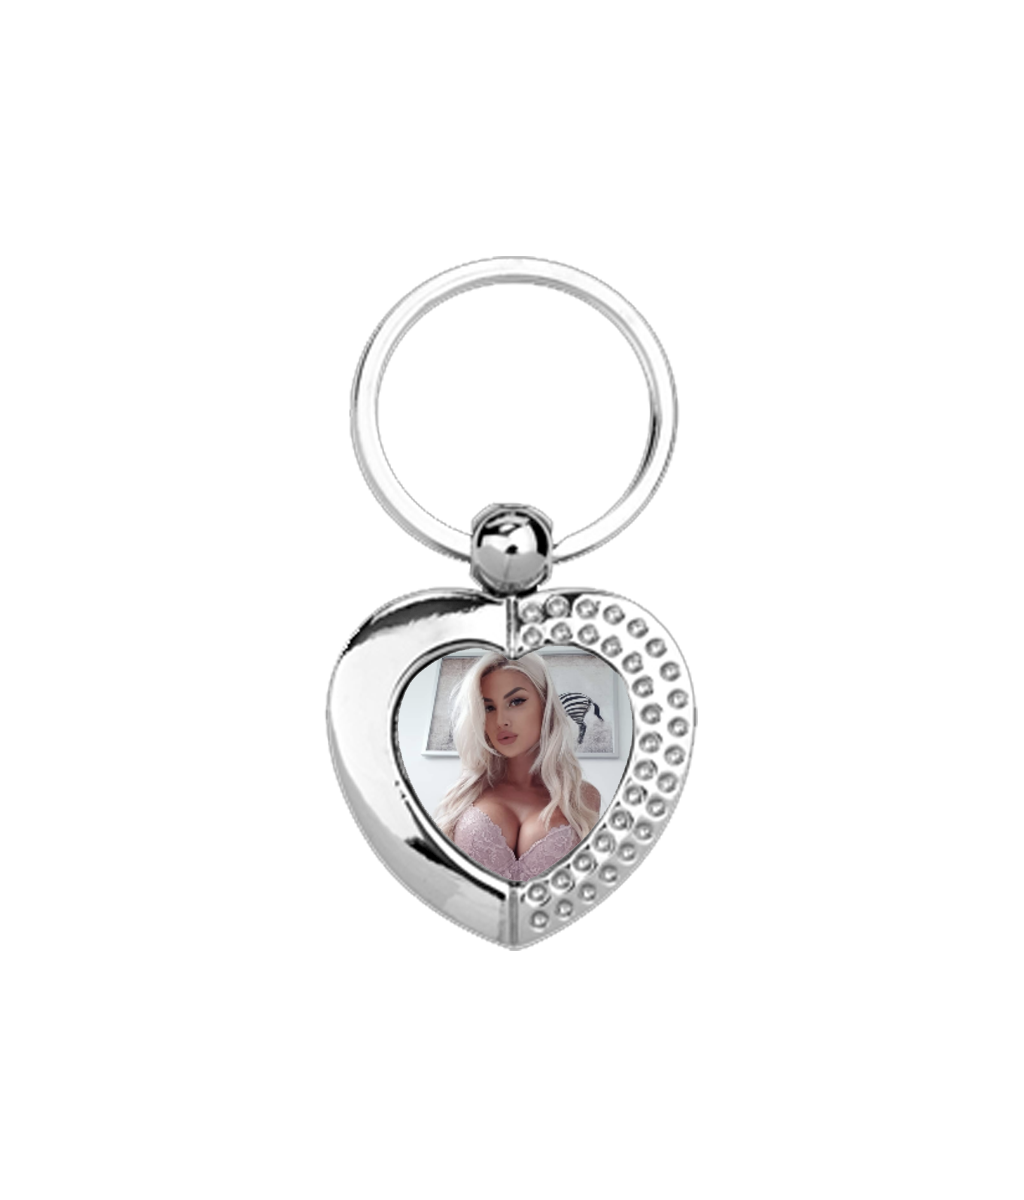 Heart Metal Keyring